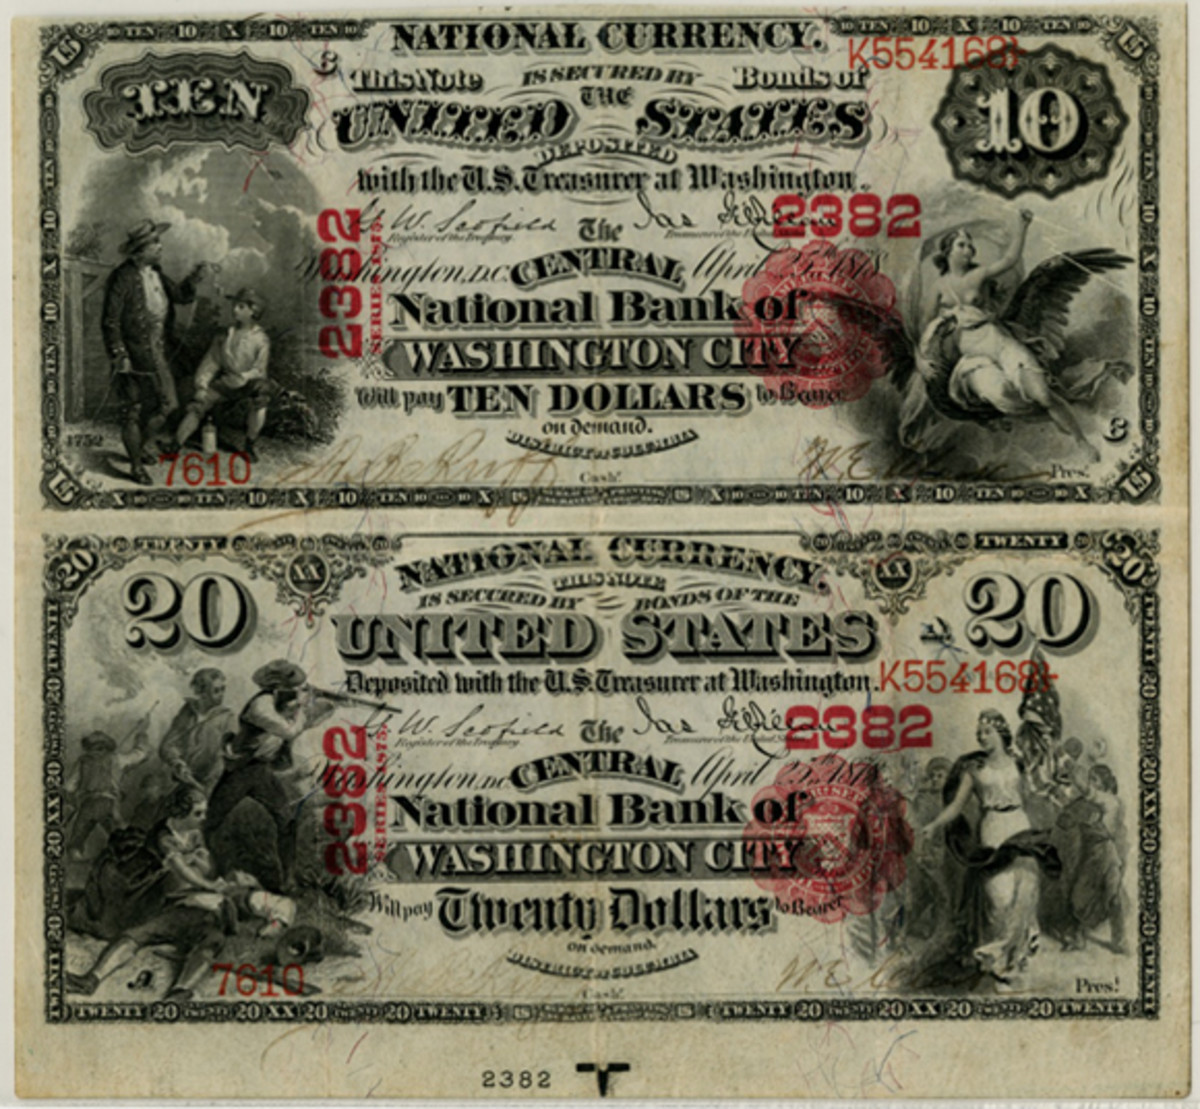 The 1875 $10/$20 National Bank Note pair of the Central National Bank of Washington, D.C. (Fr.419/434) that will be offered in AIA's December NY sale. It grades PCGS Very Fine 30 with minor restorations. (Image courtesy Archives International Auctions)